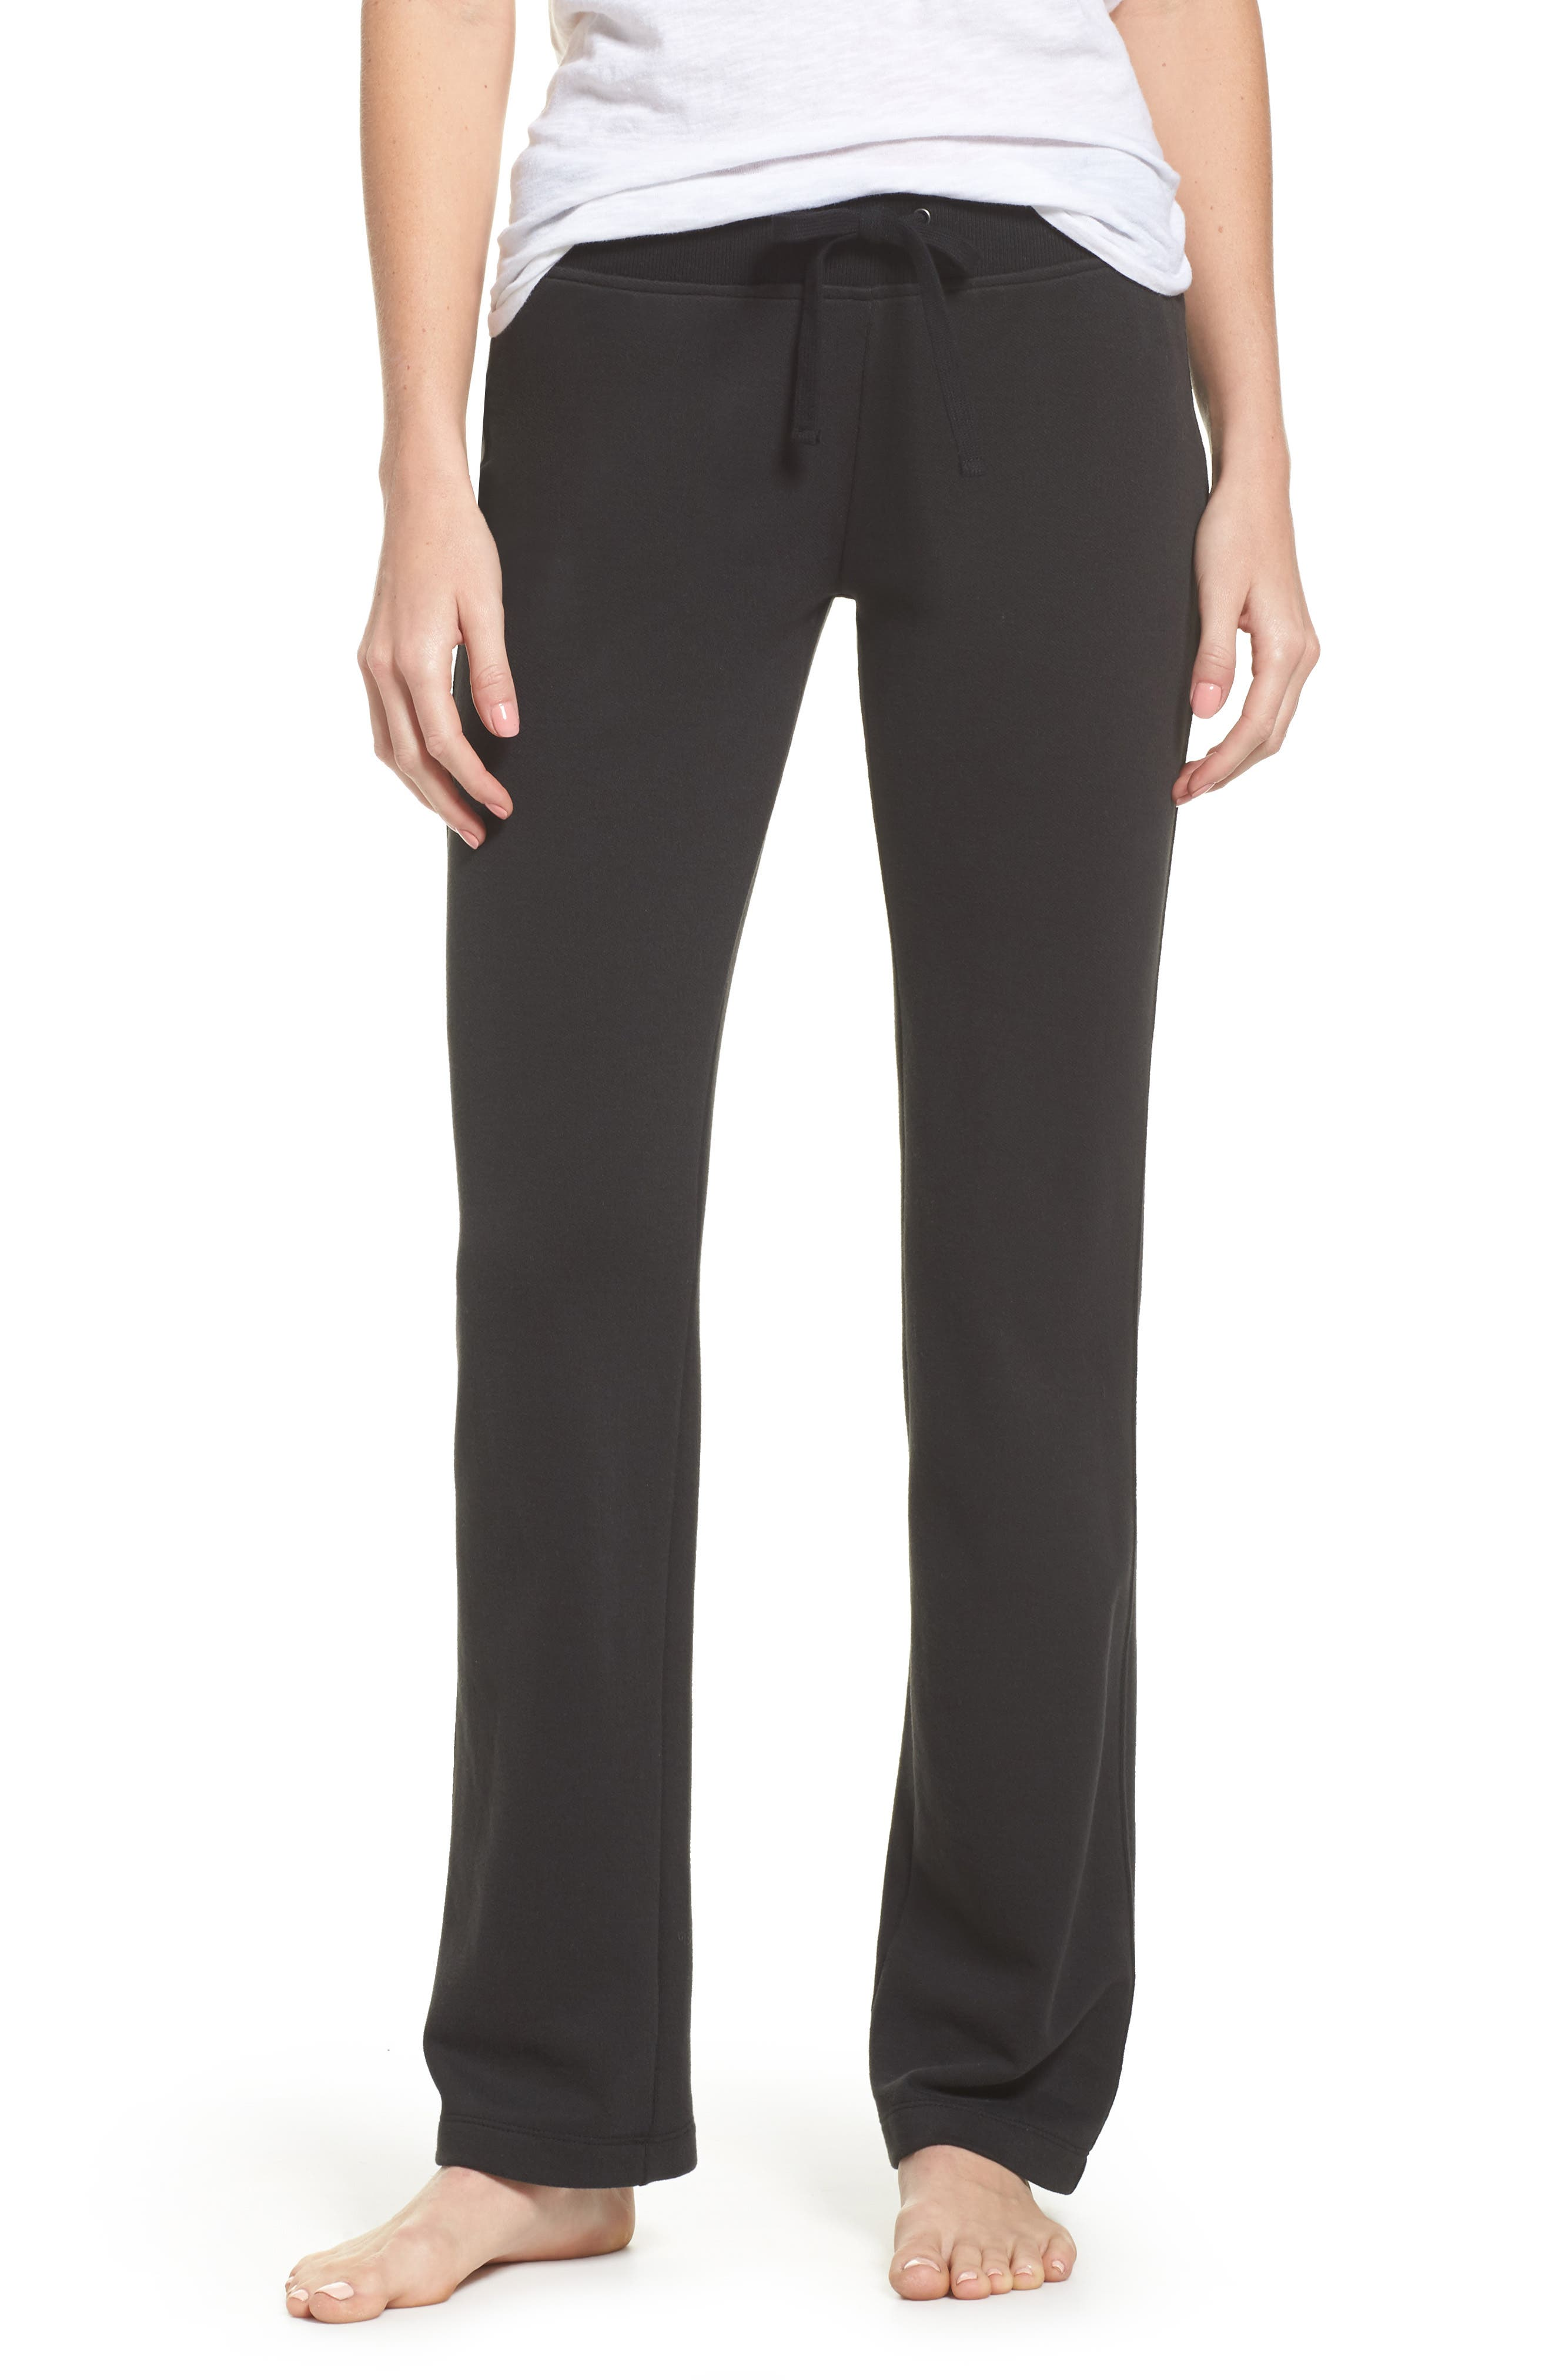 Penny Lounge Pants,                         Main,                         color, BLACK